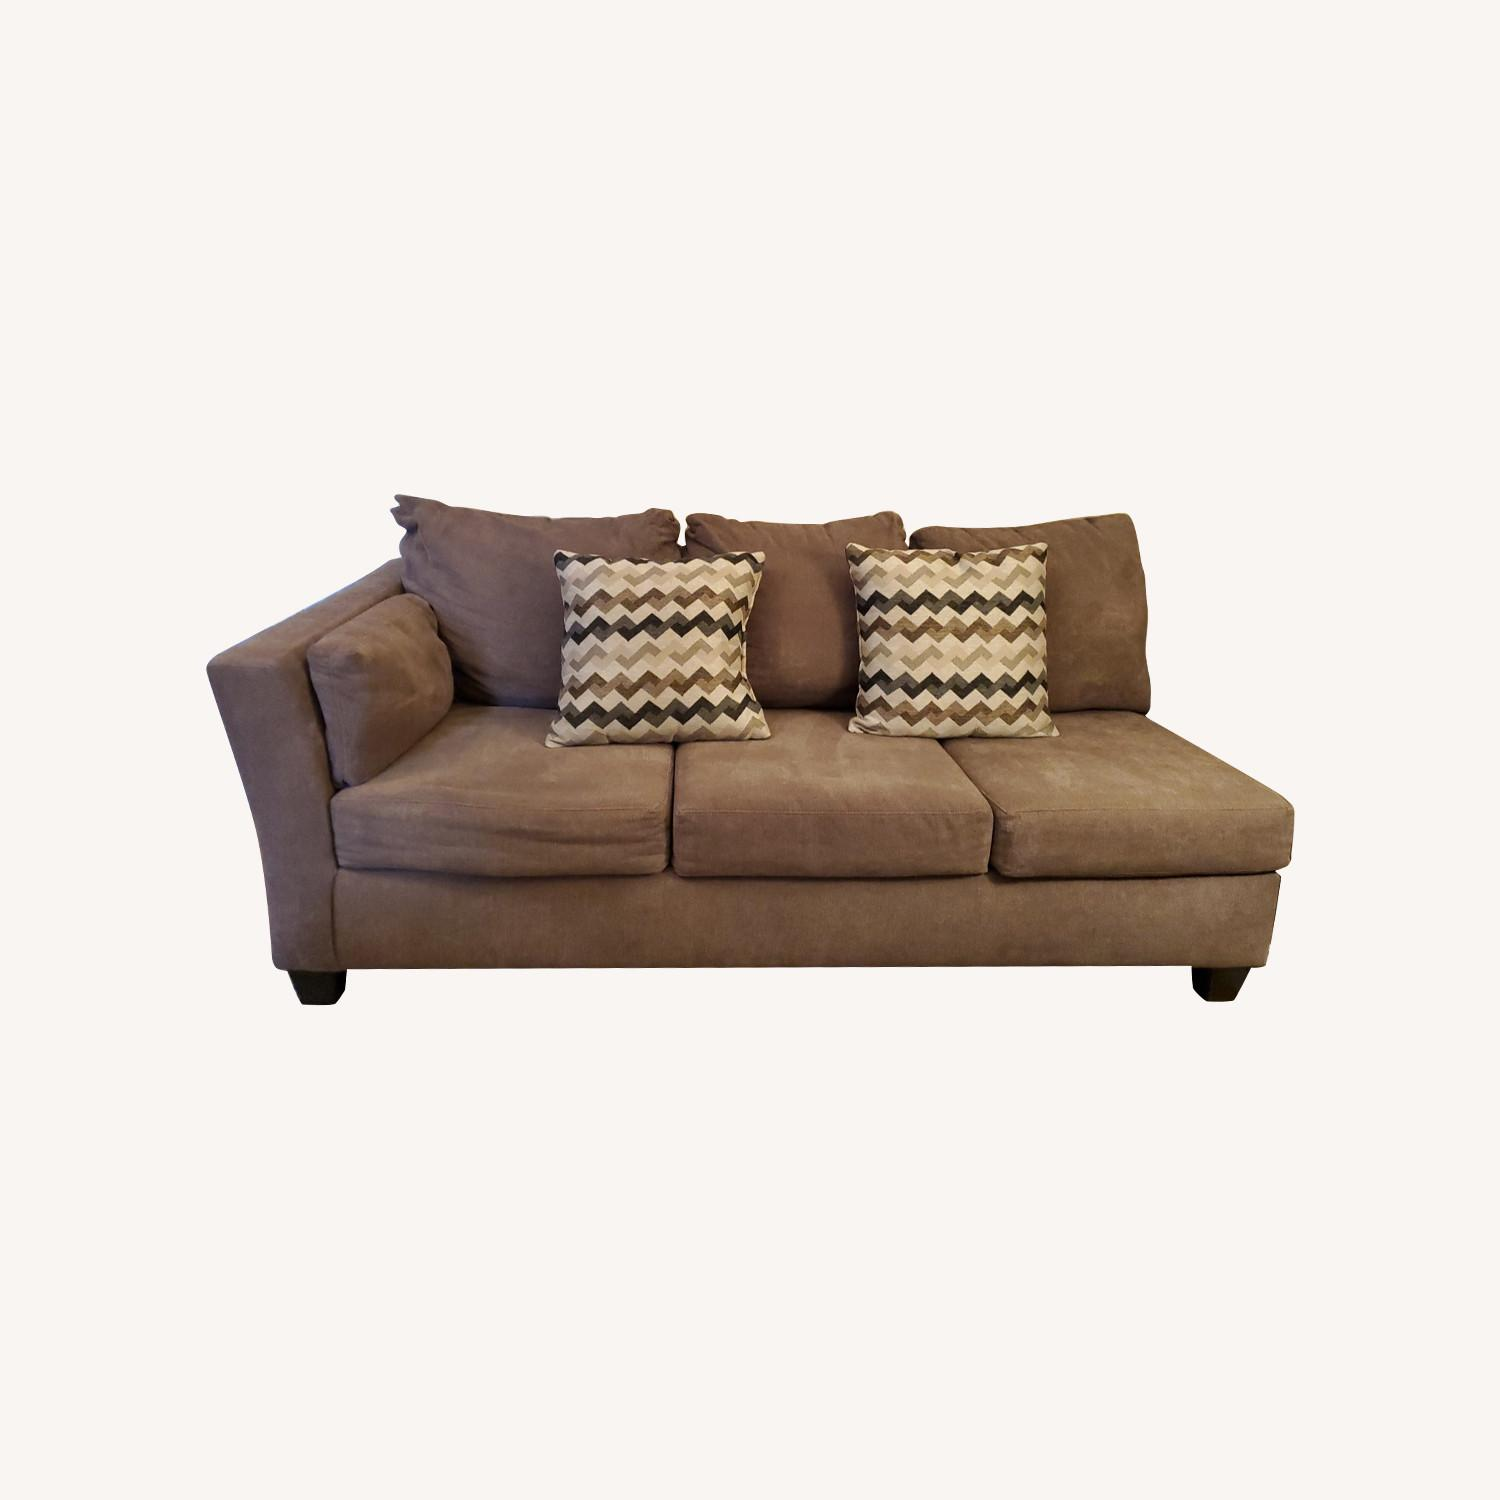 Bob's Discount 2 Piece Sectional - image-0